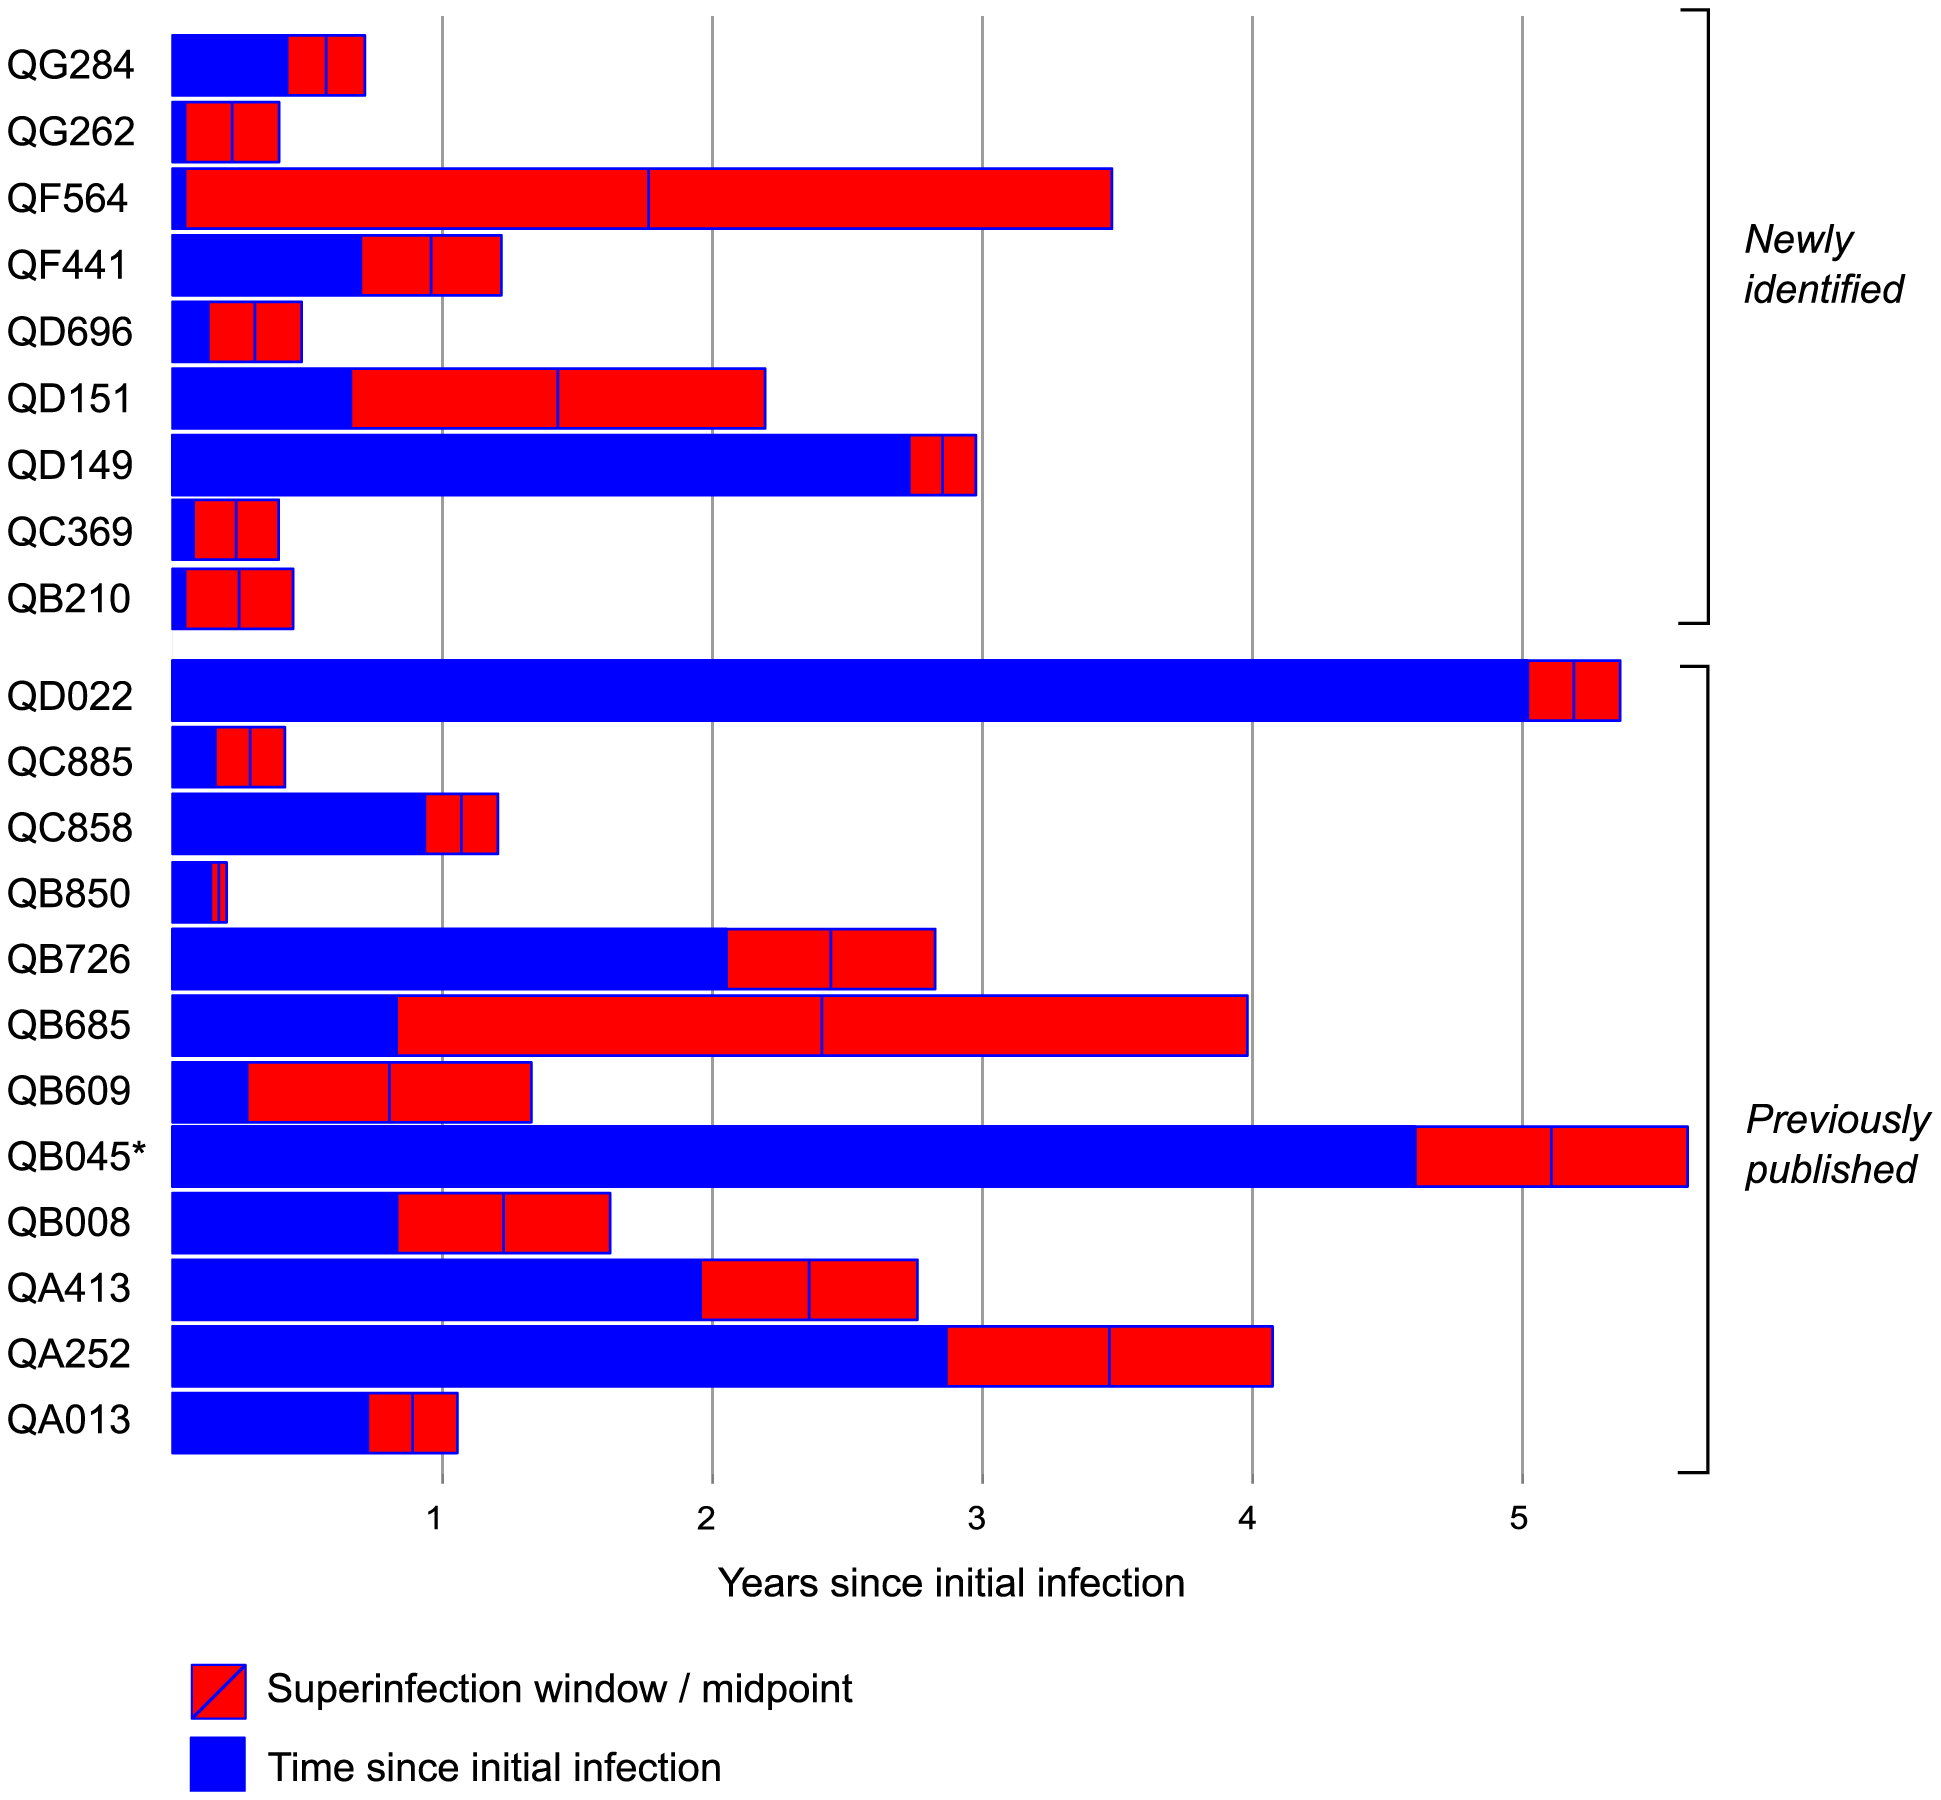 Summary of timing of superinfection events relative to initial infection events.